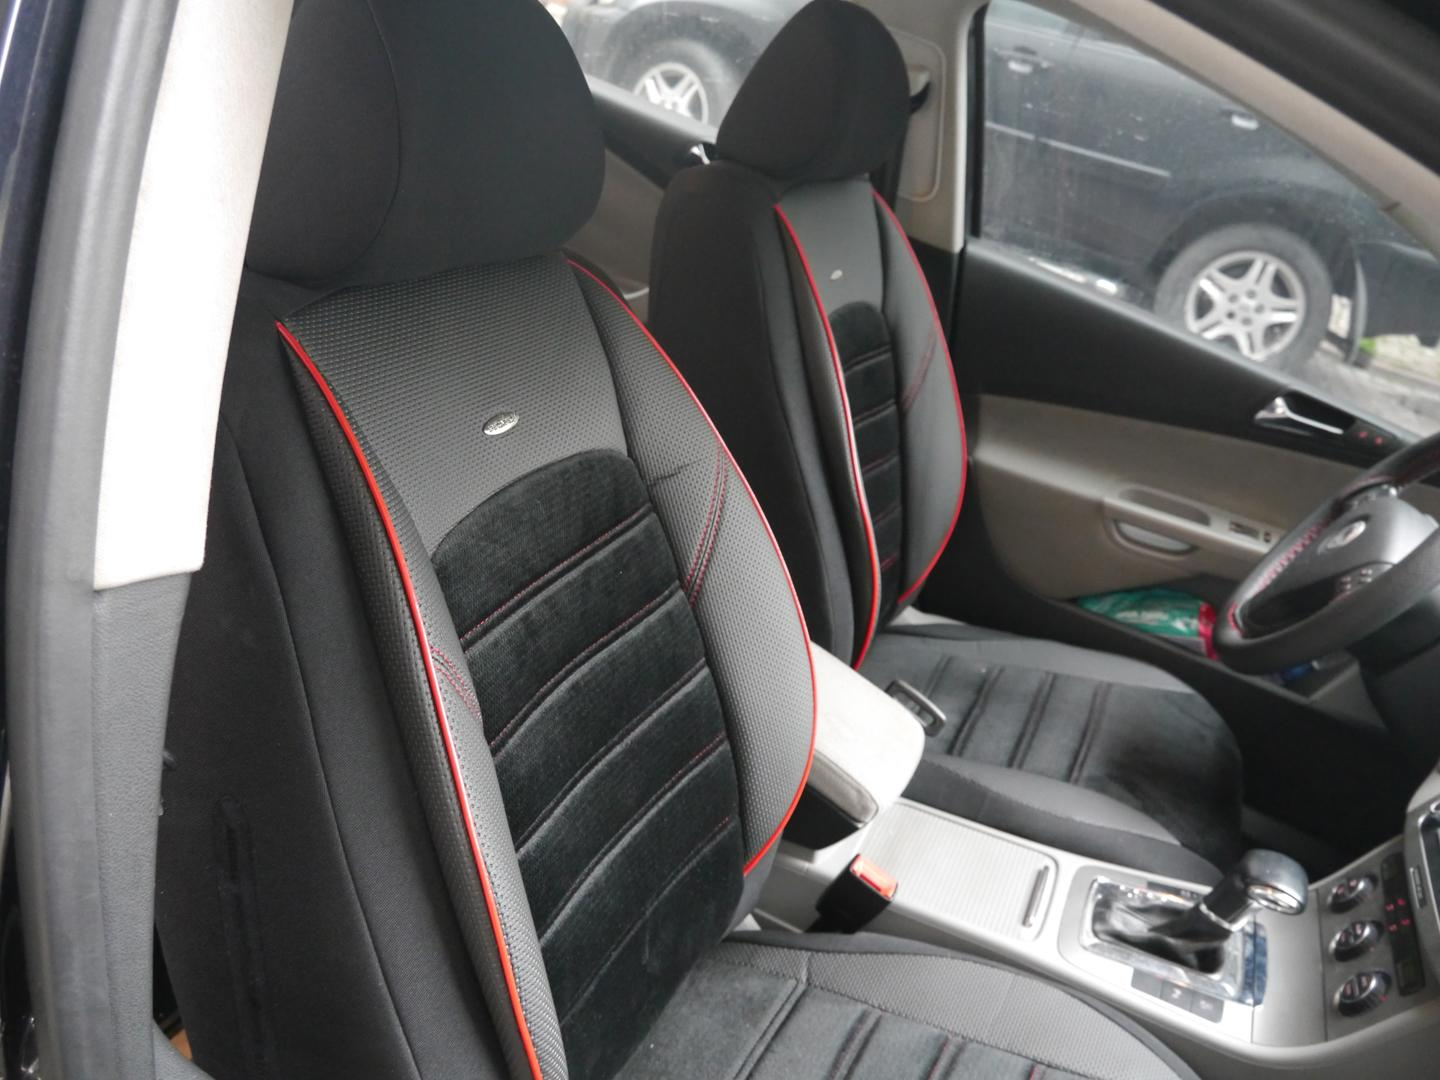 Bmw x1 car seat covers